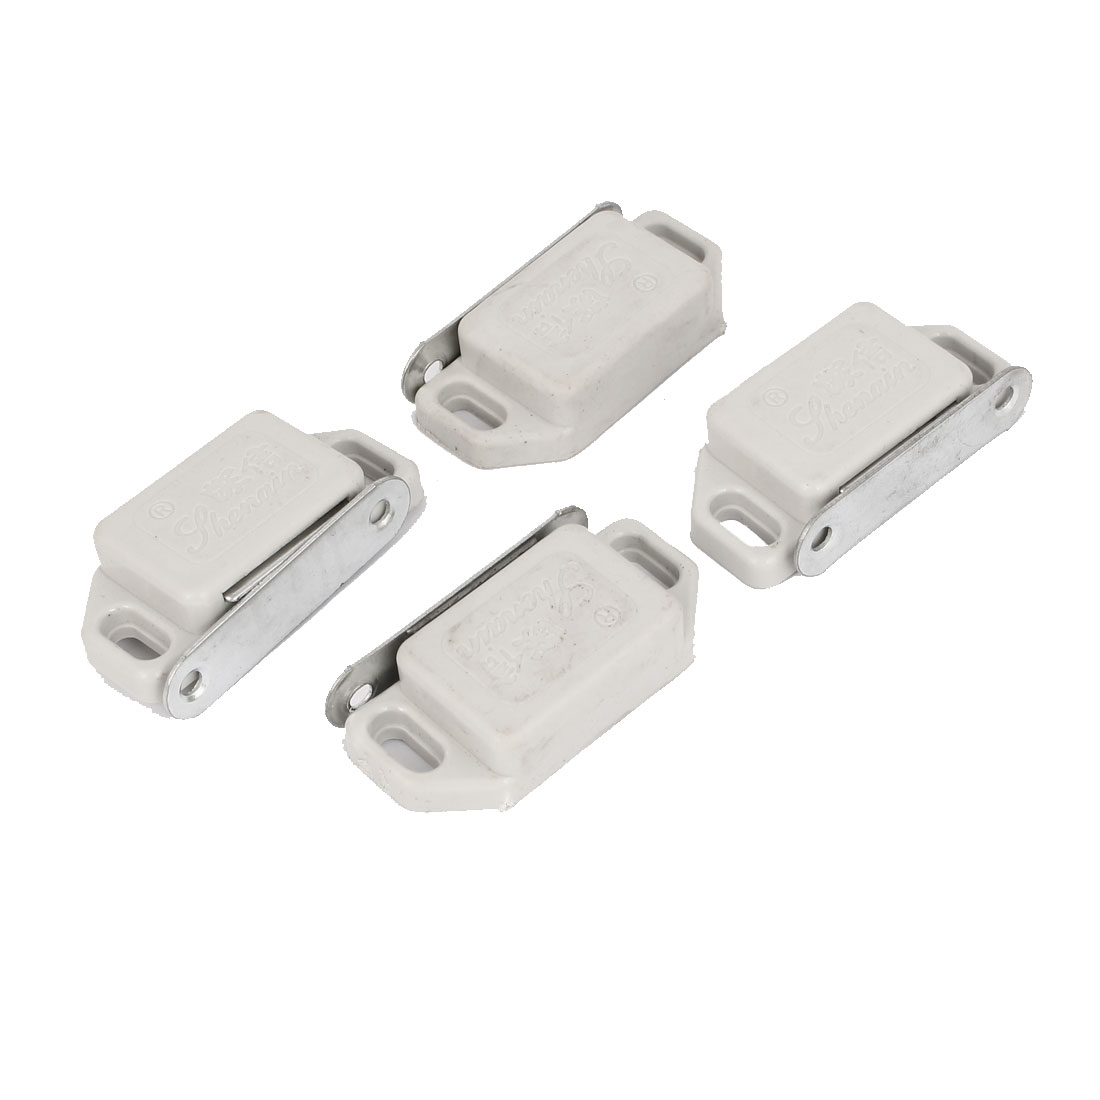 56mm Length Cabinet Door Hardware Magnetic Catch Off White 4pcs